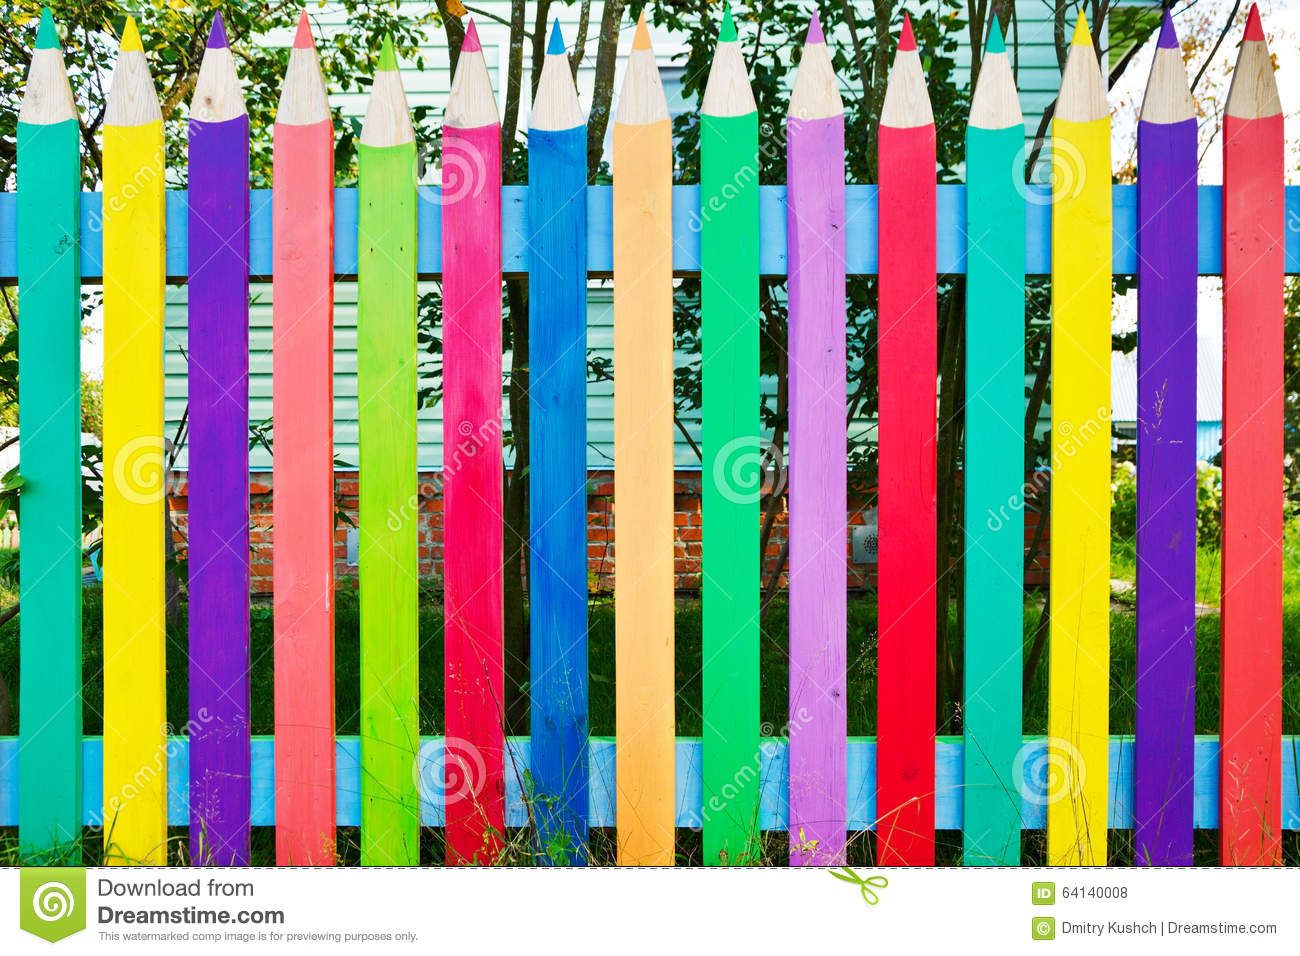 Fox Wood Special School Playground Development as well Classroom Furniture also History Of Swings On Playgrounds in addition Plastic Climbing Frames And Play Centres moreover Stock Photo Fence As Colorful Pencils Wooden Form Image64140008. on wooden playground equipment